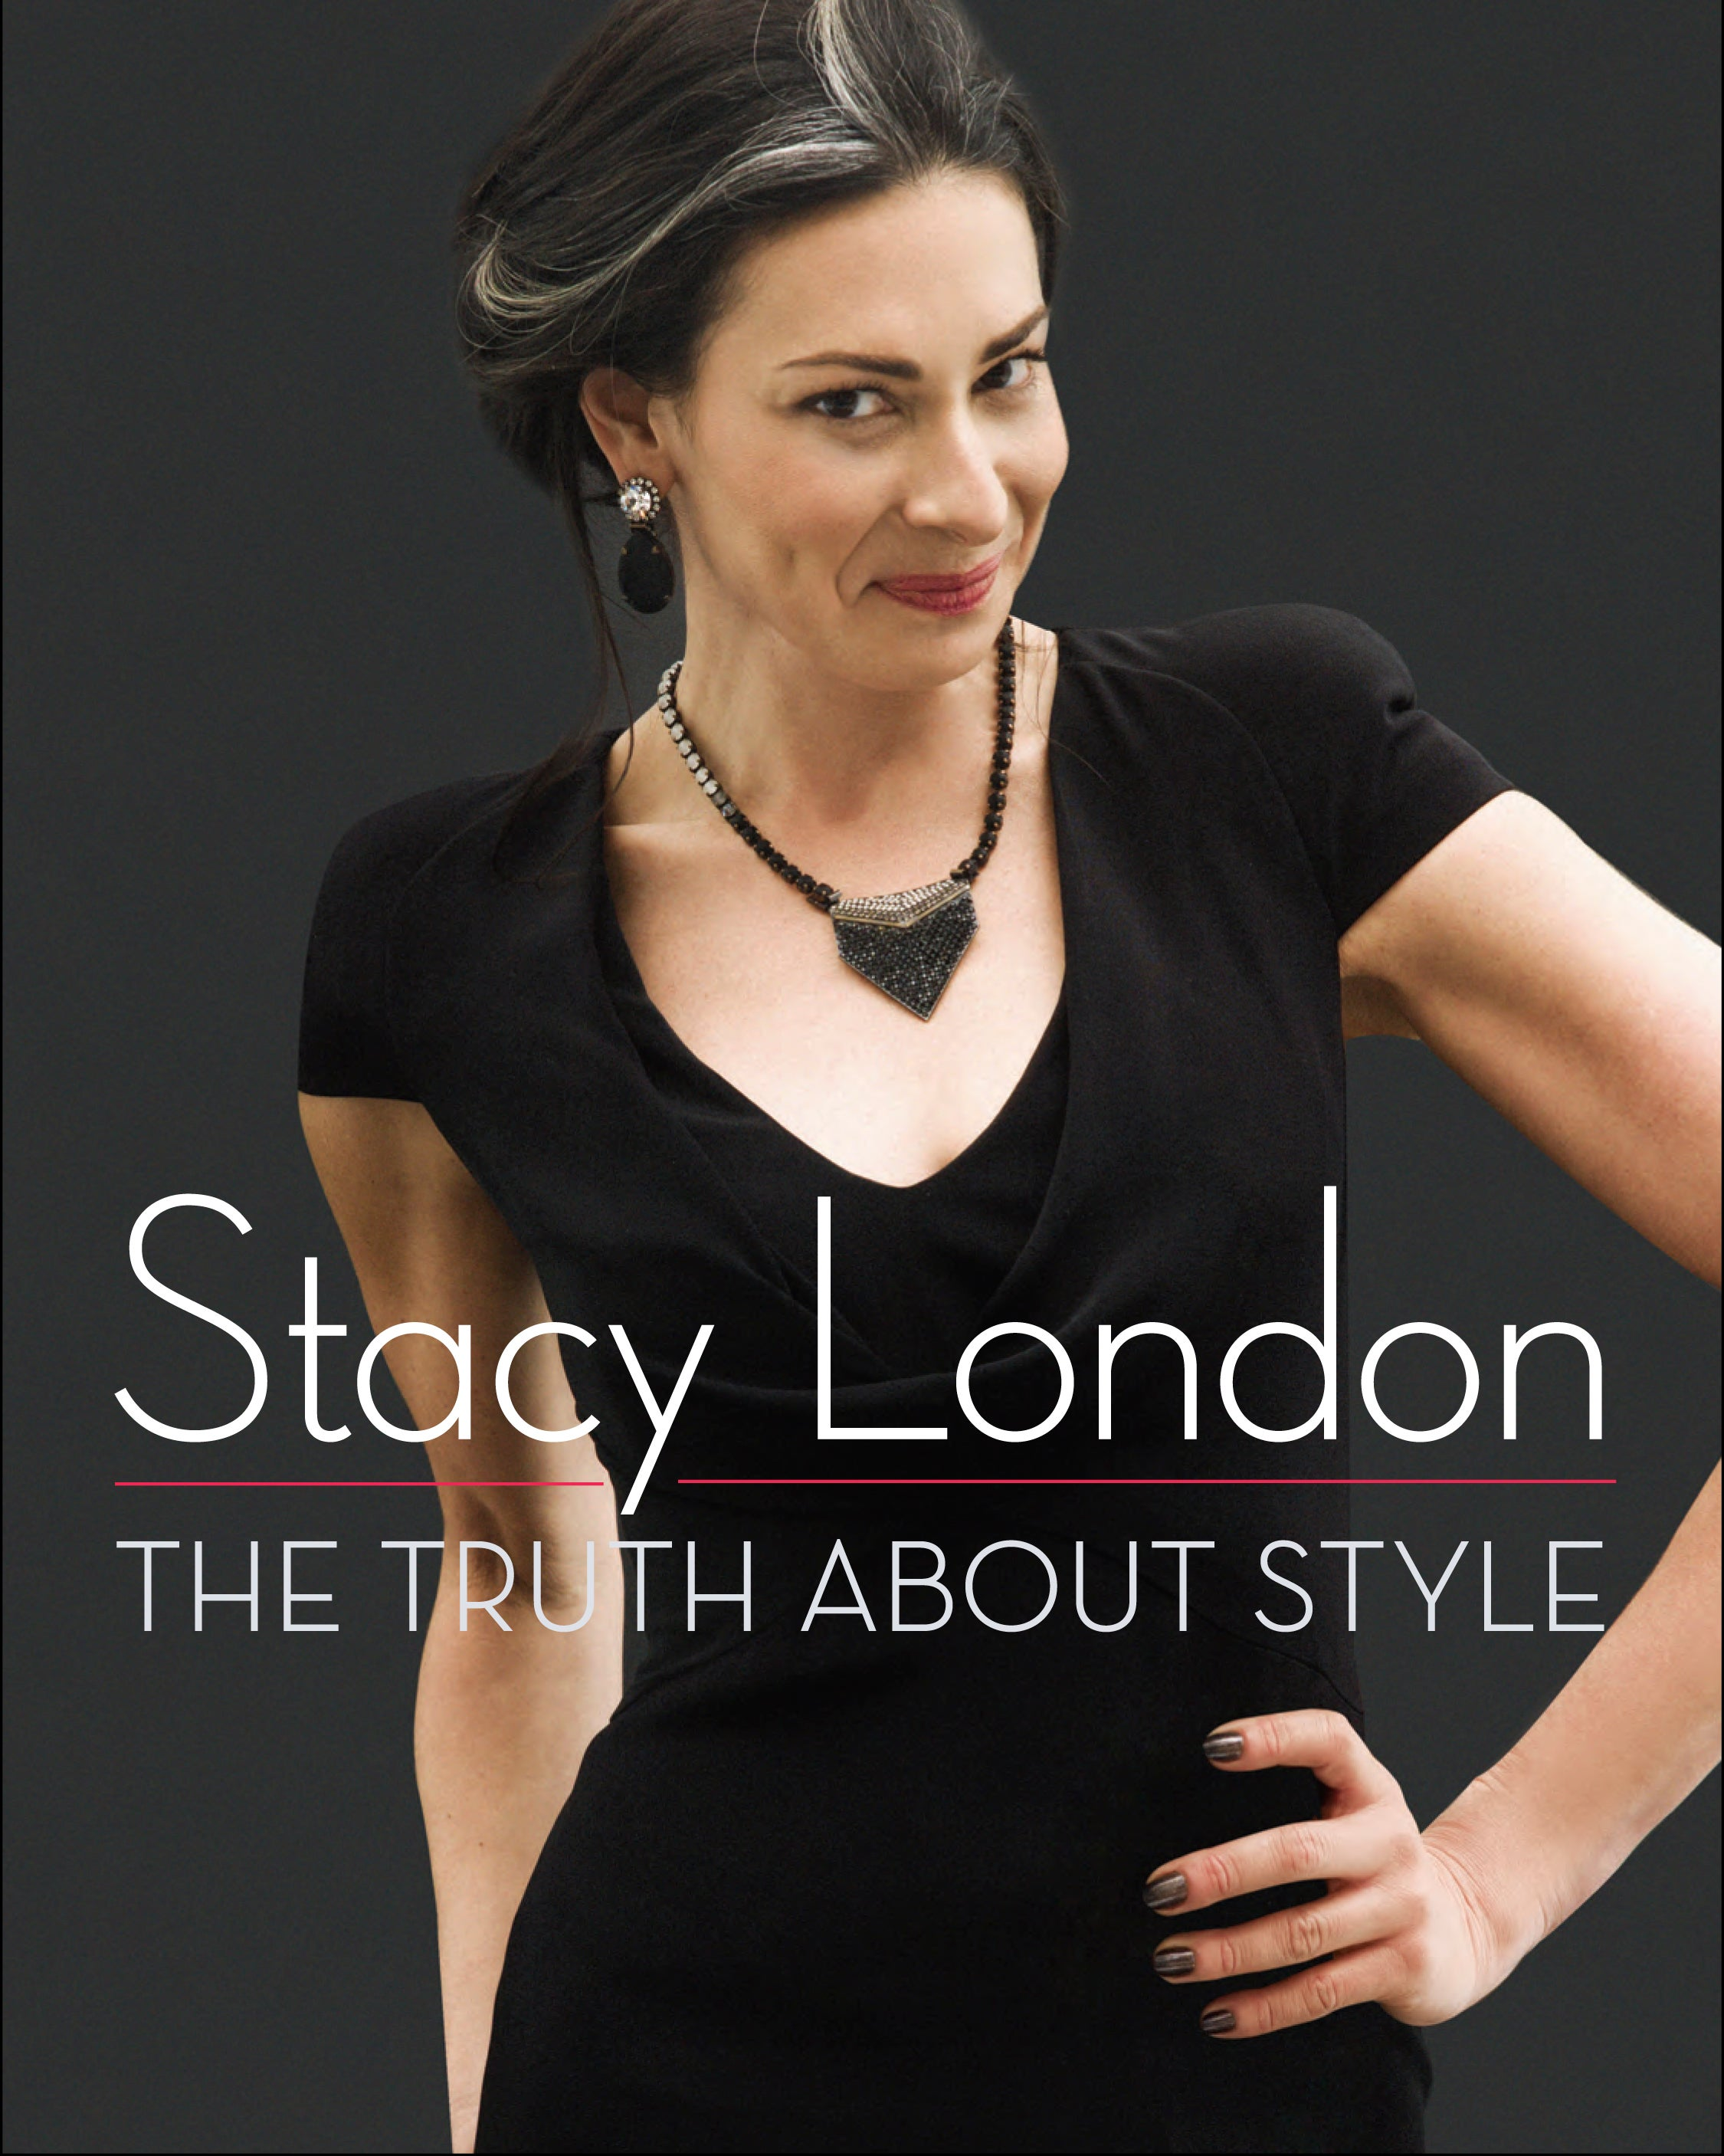 Fashionably late with stacy london 26